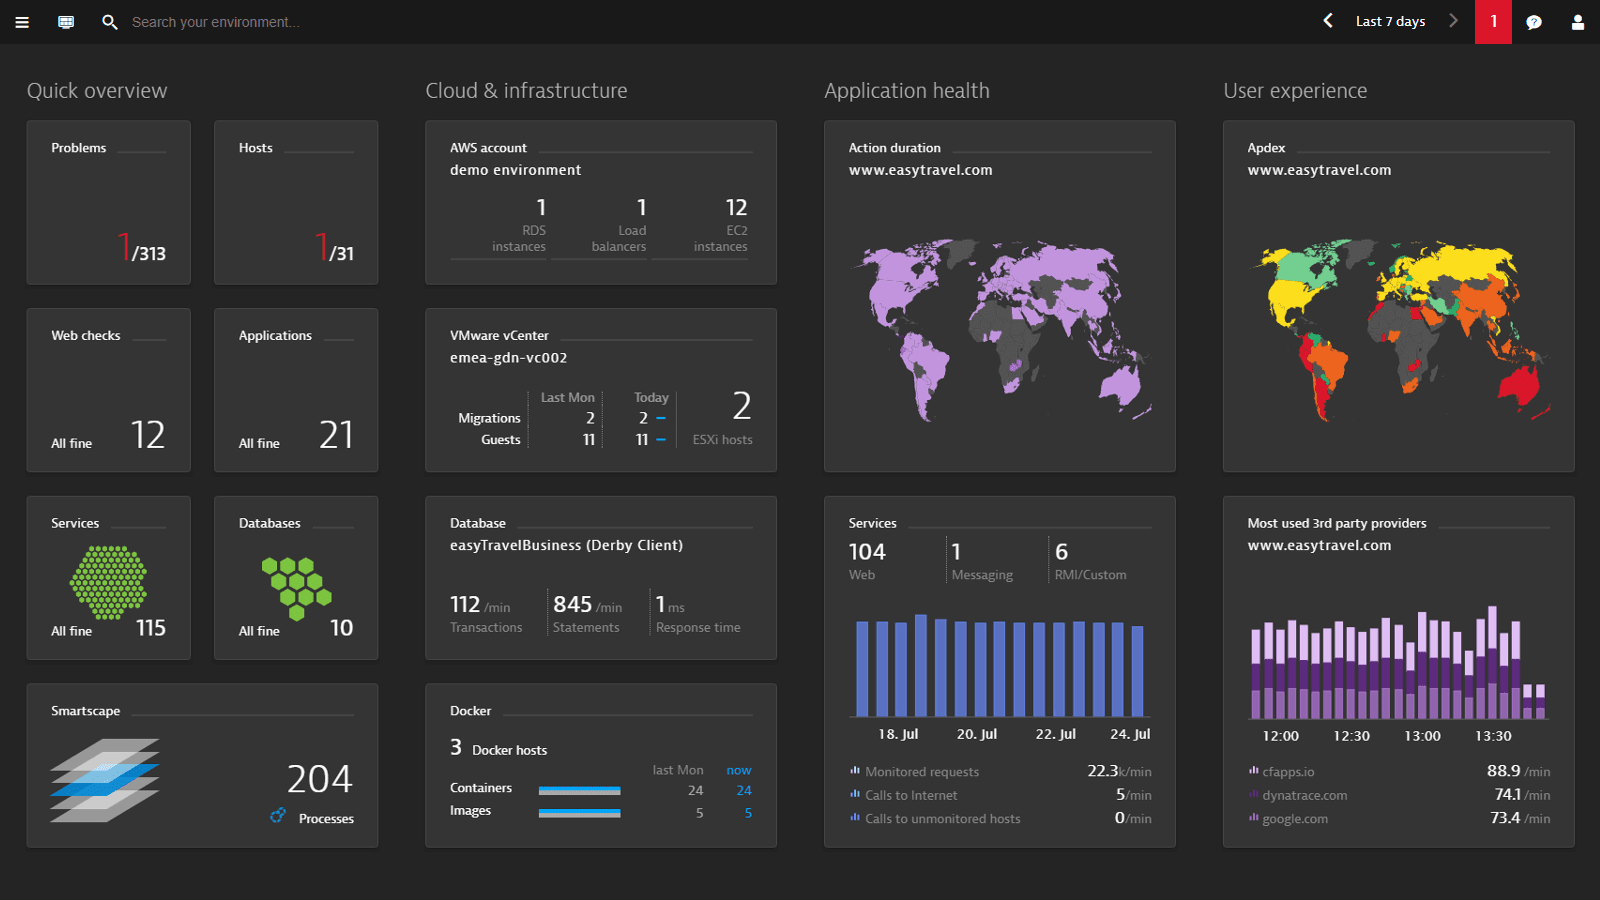 The customizable dashboard shows all important facts of your web application in one spot